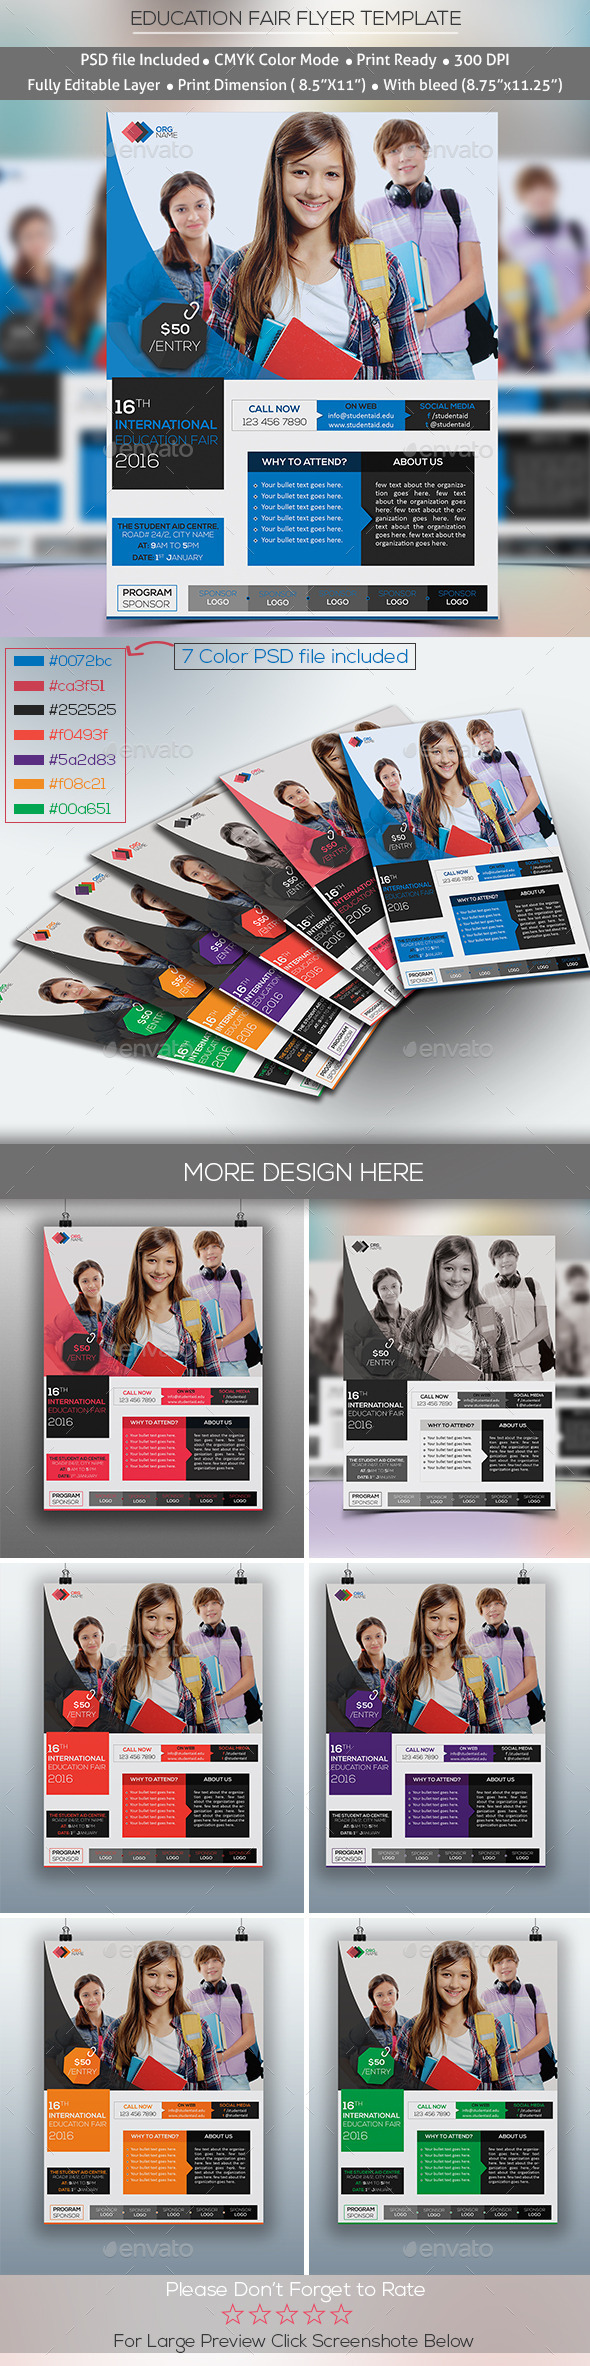 GraphicRiver Education Fair Event Flyer Template 10010936